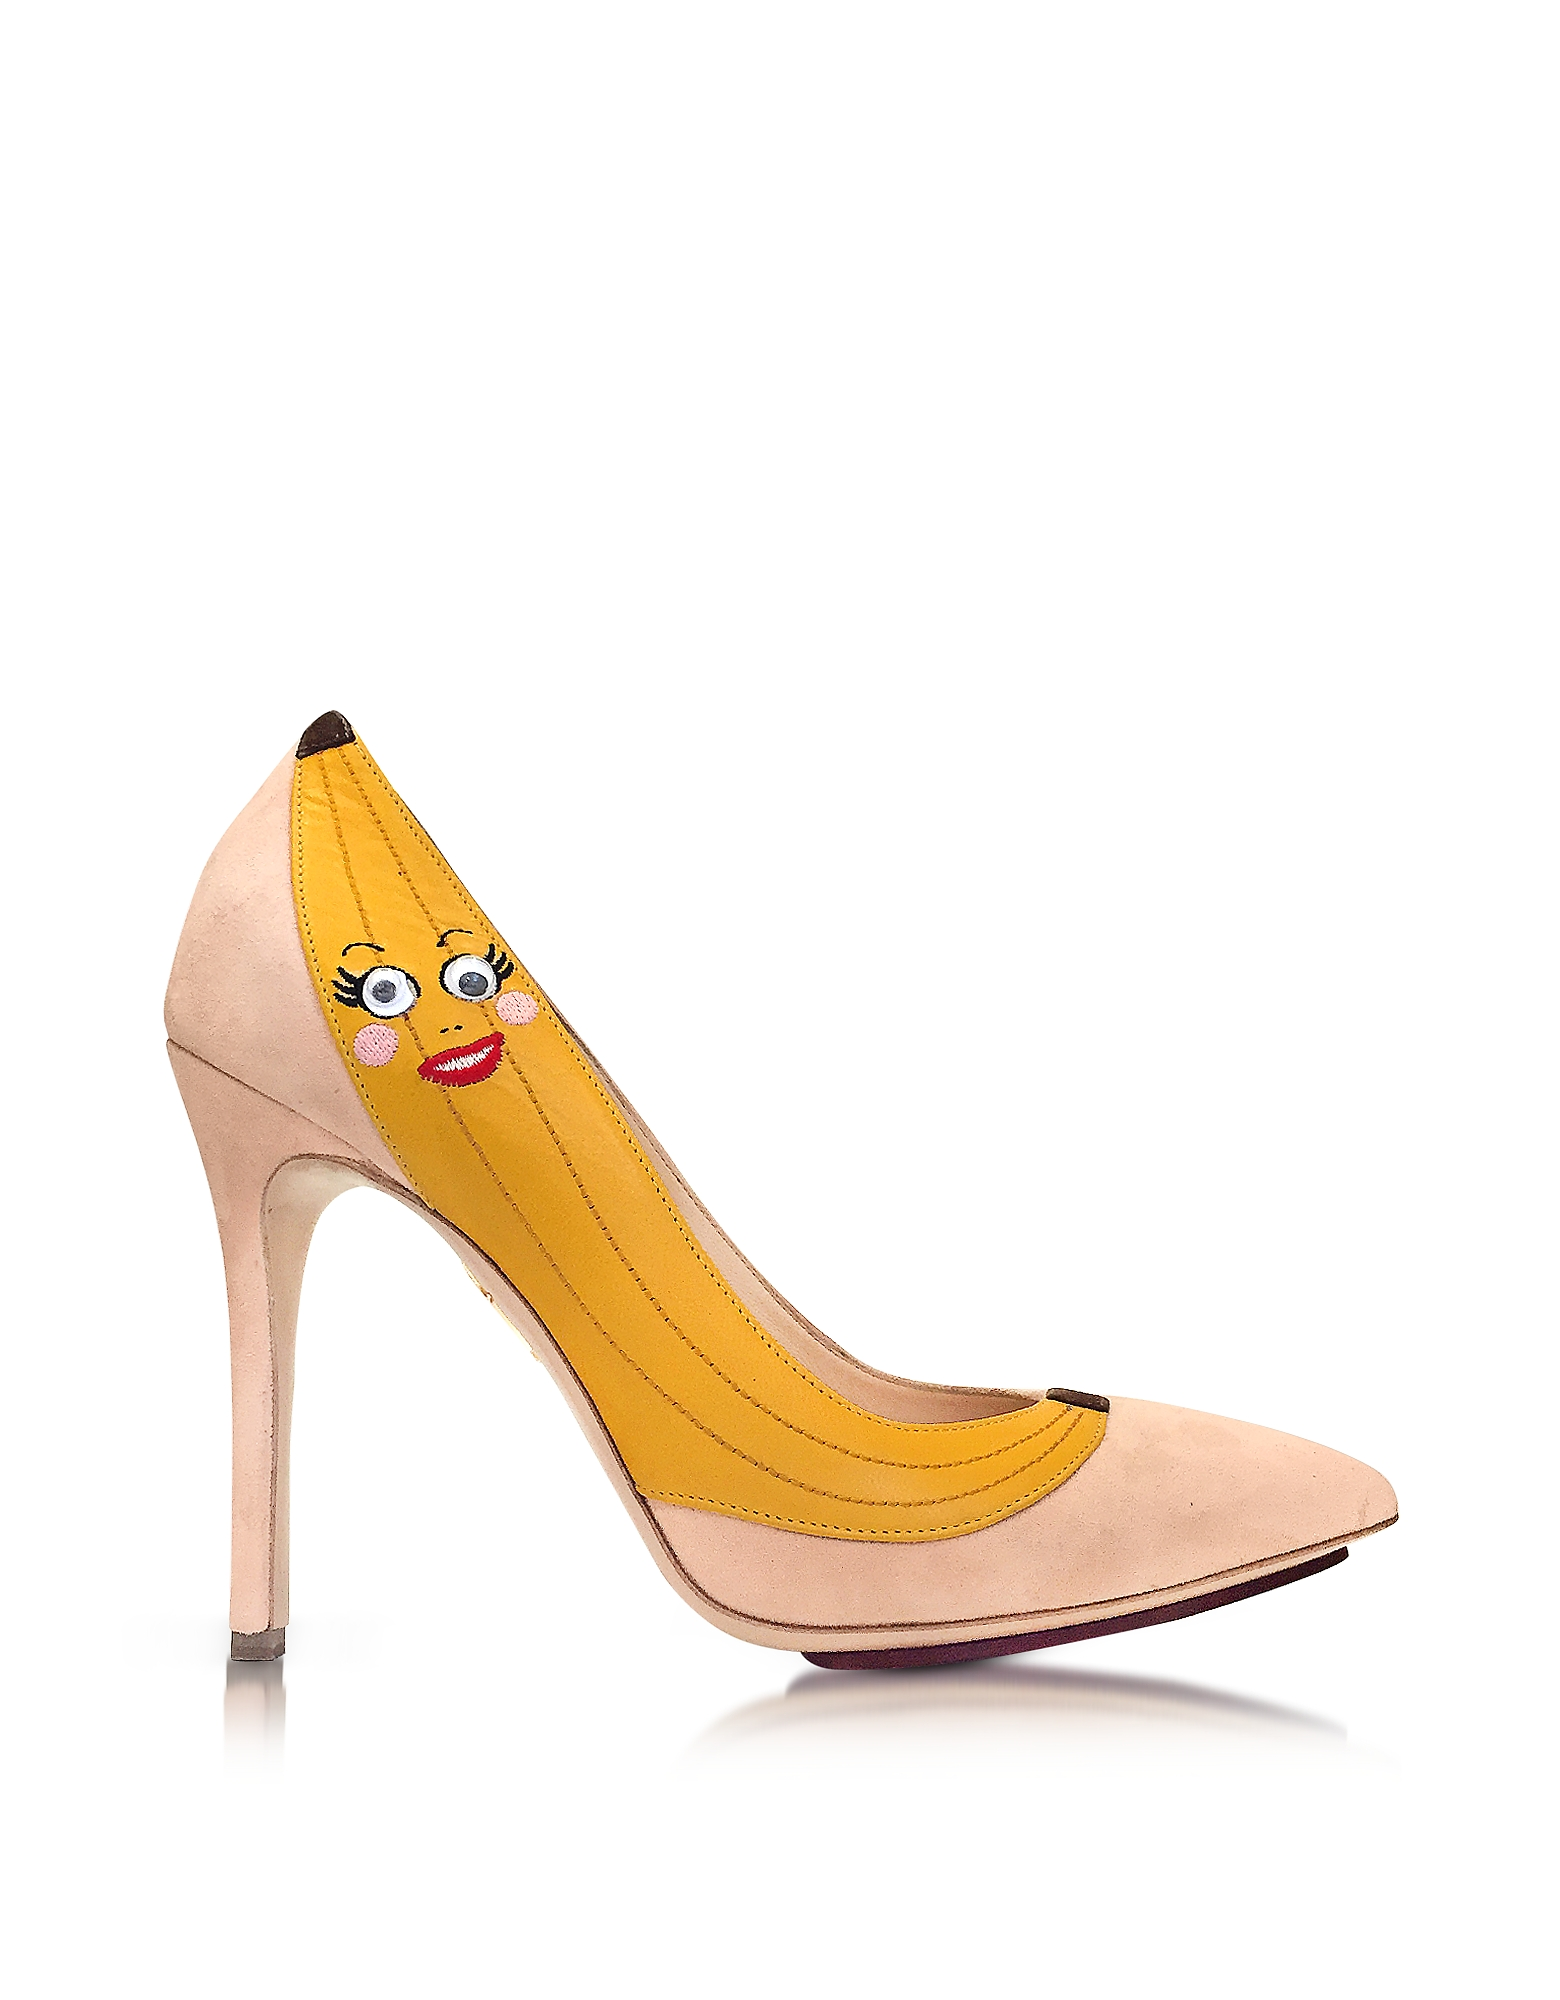 Charlotte Olympia Shoes, Chiquita Blush Suede Pump w/Banana Applique